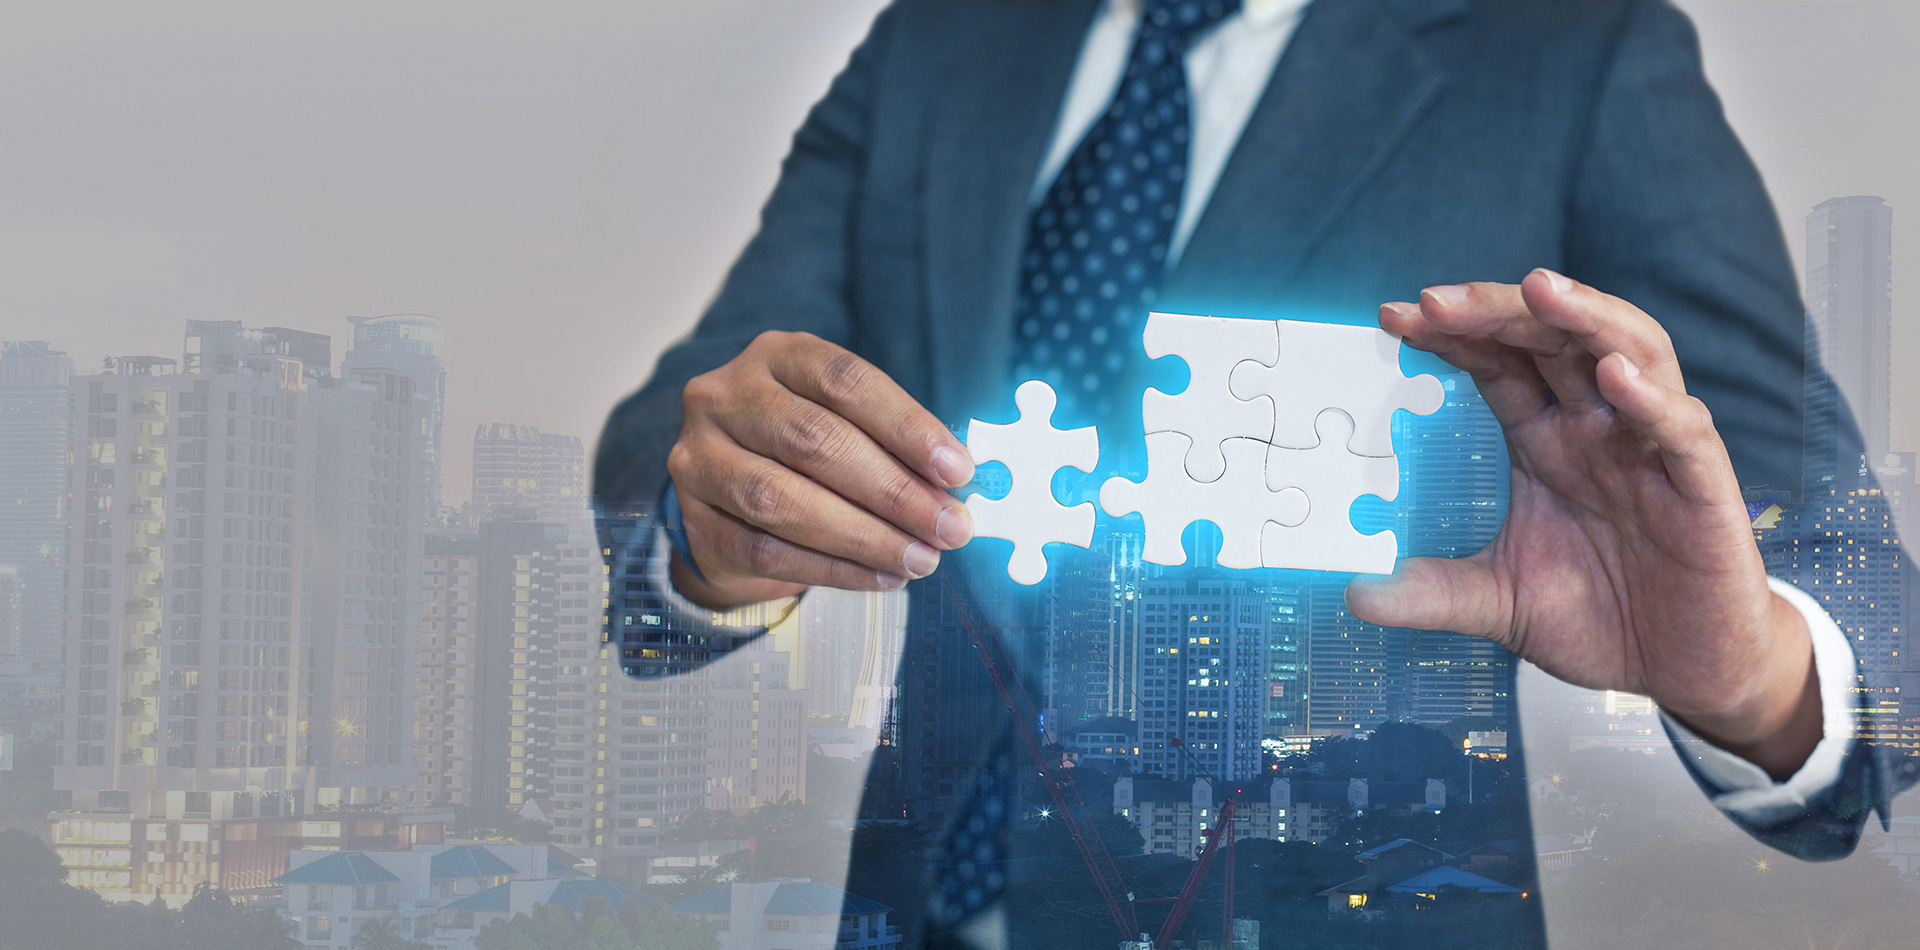 Productive Solutions consulting services helps business leaders connect the pieces of the puzzle